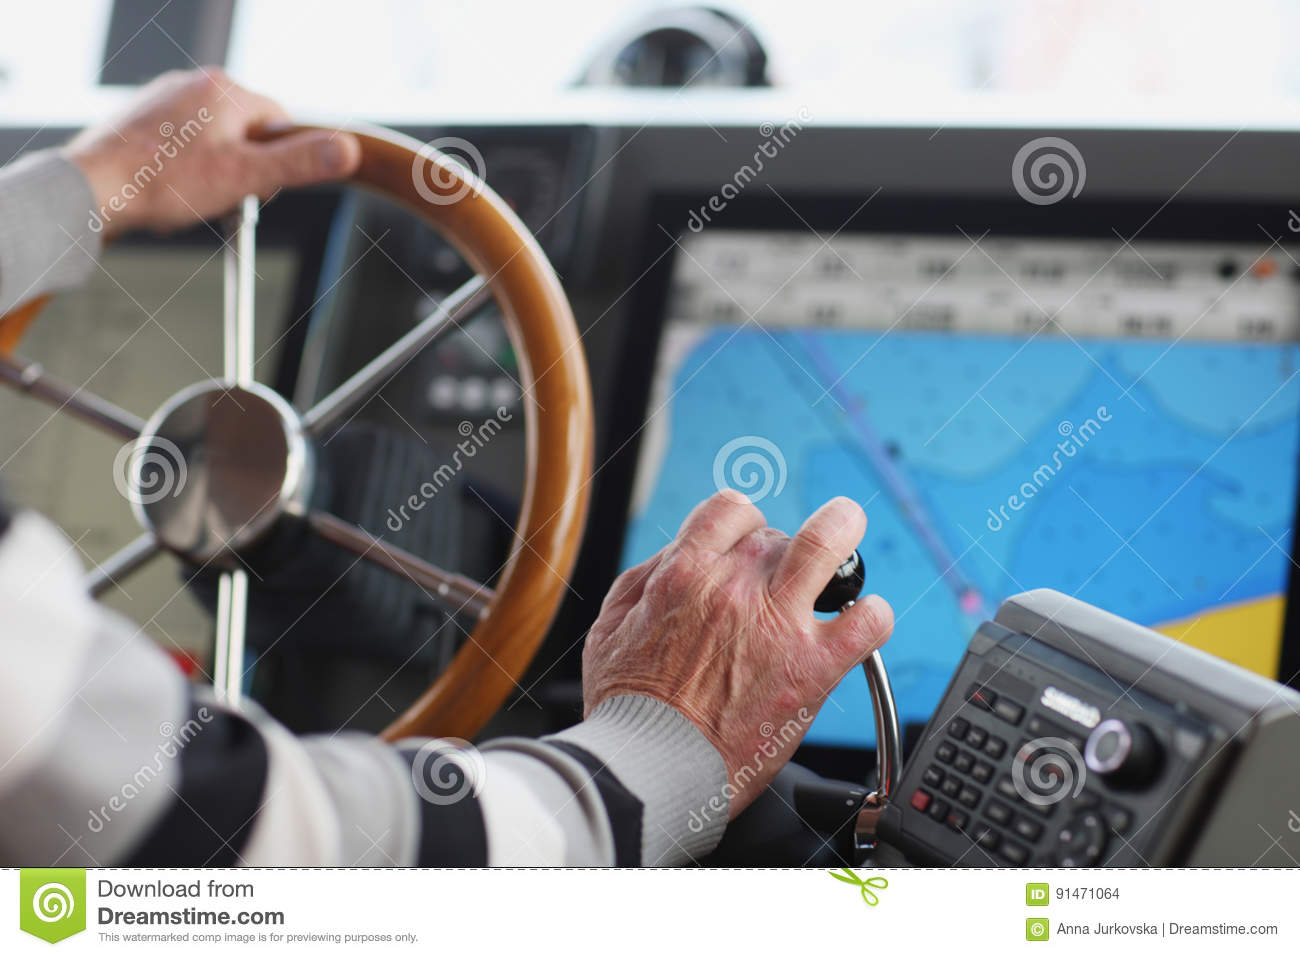 The captain stock photo  Image of maps, navigation, inside - 91471064